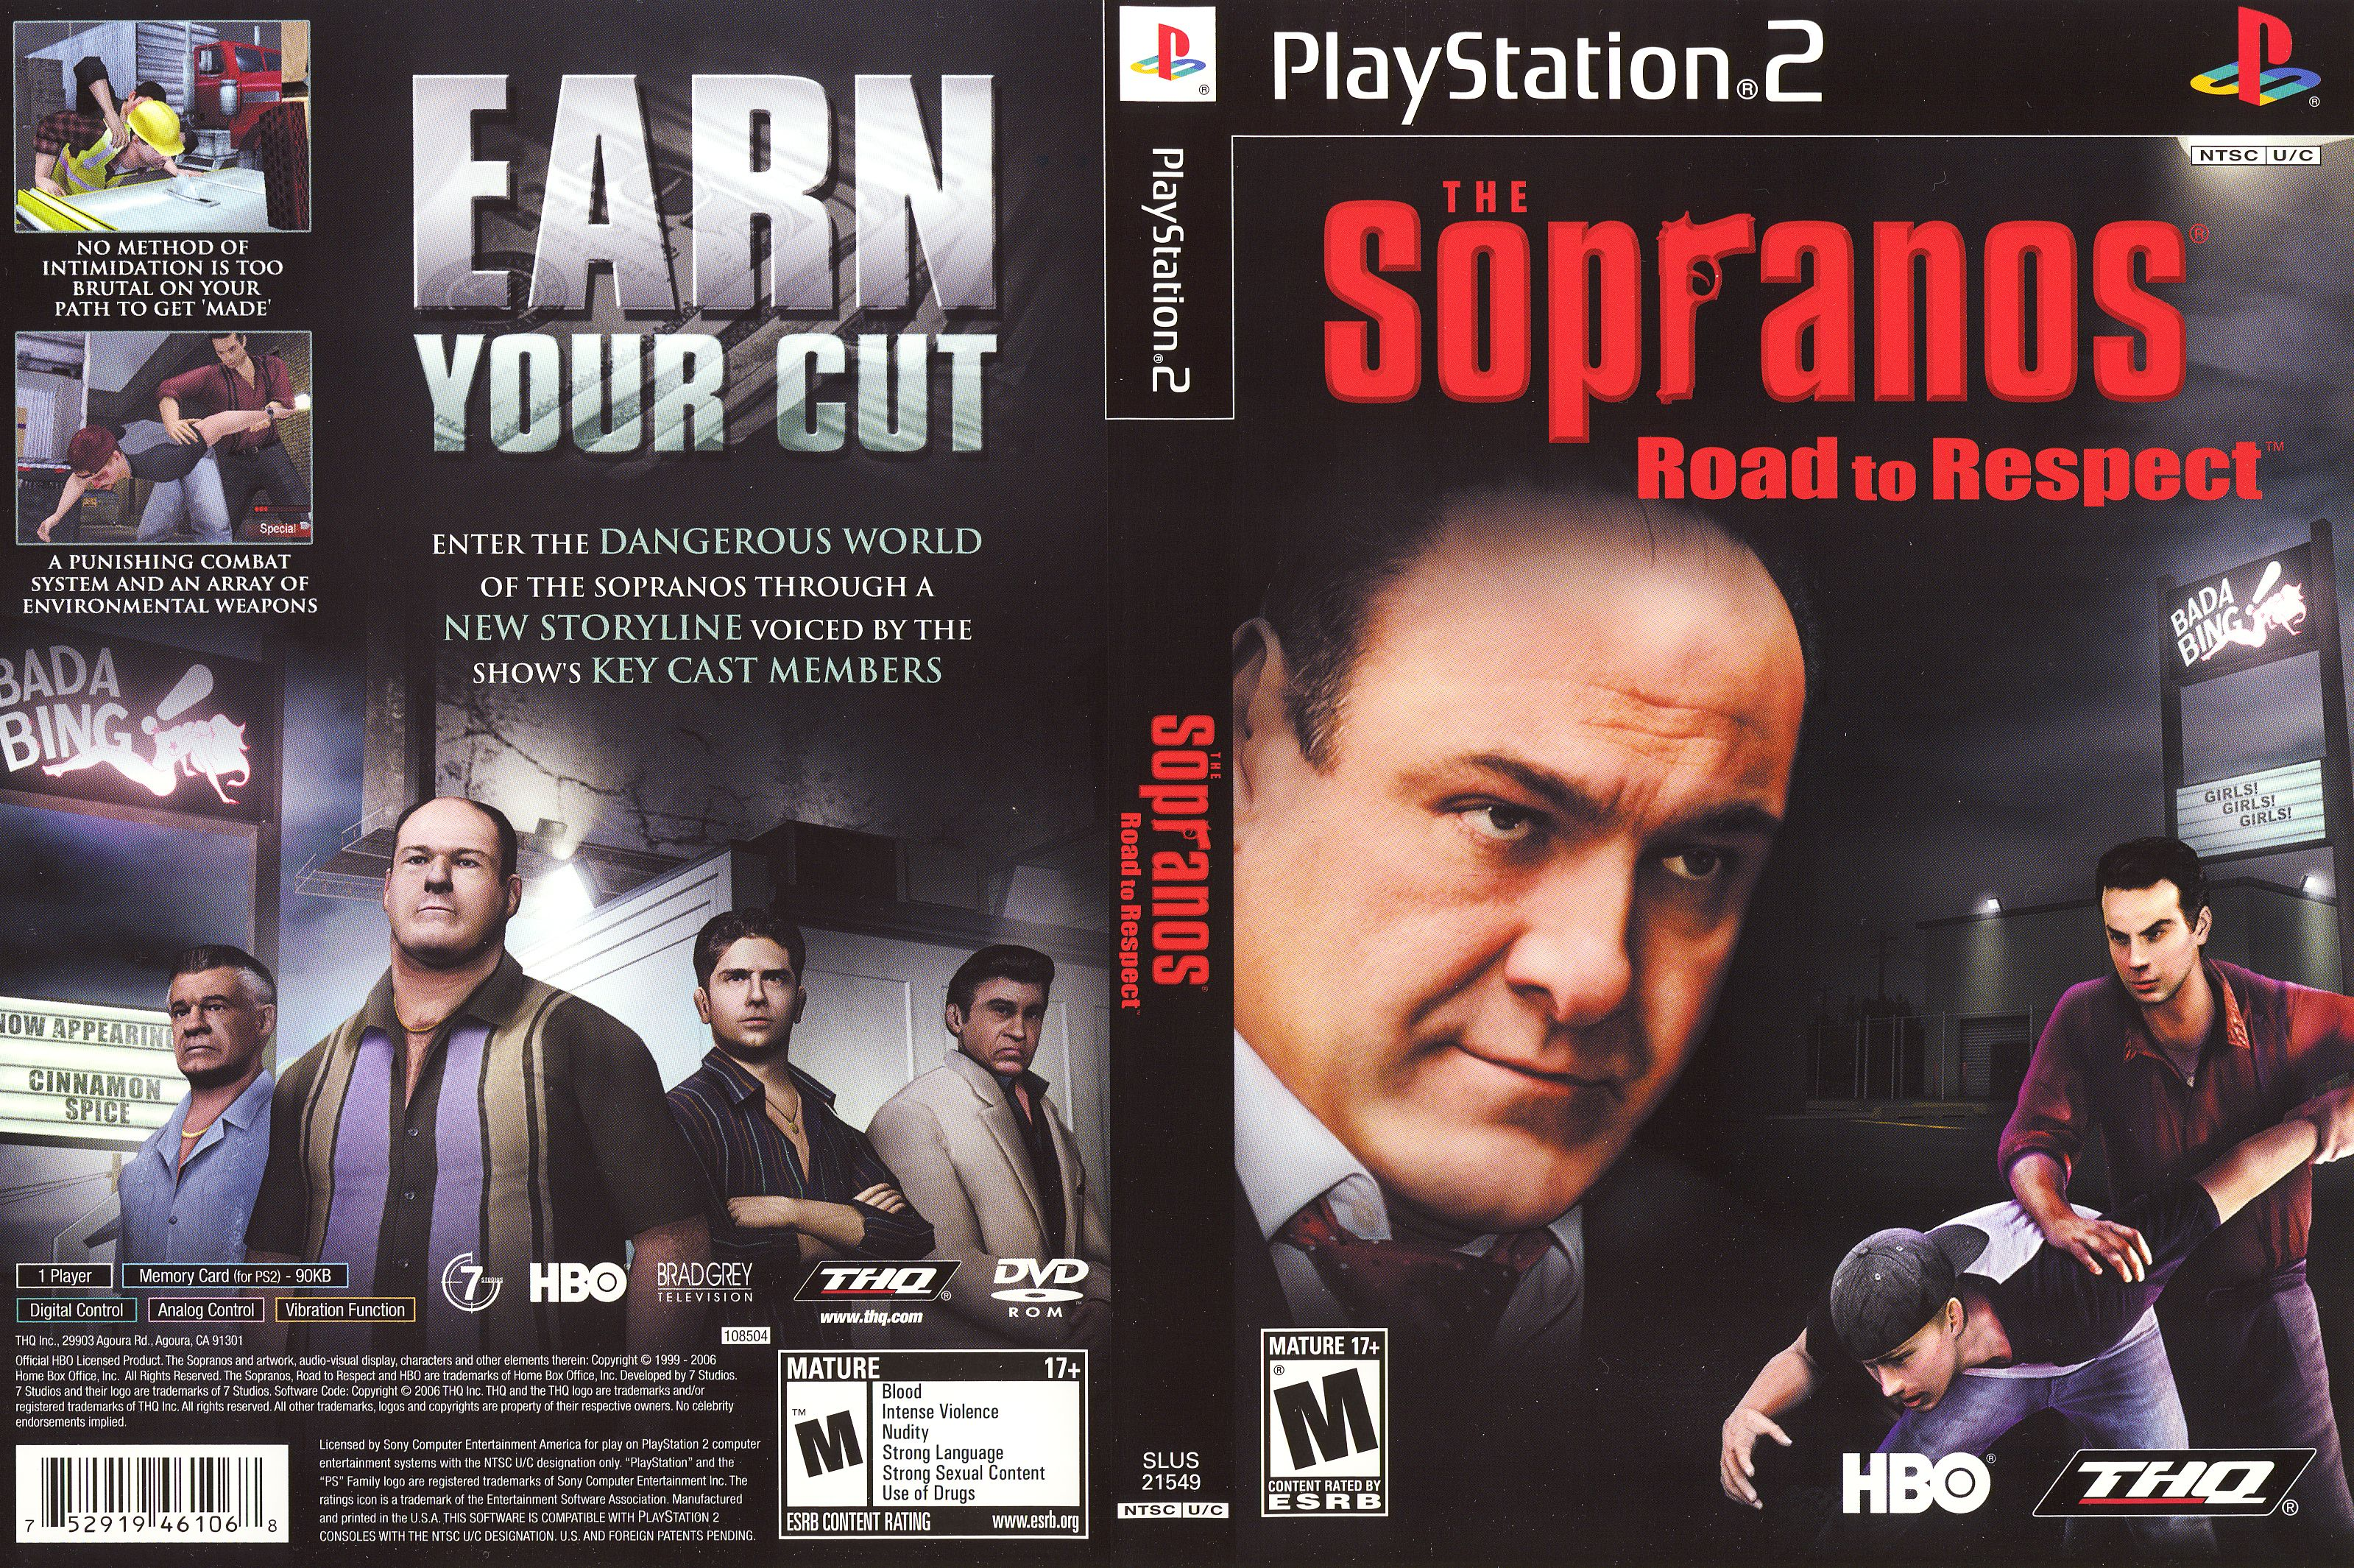 Pin By Smith On Playstation 2 Game Covers Sopranos Hbo It Cast